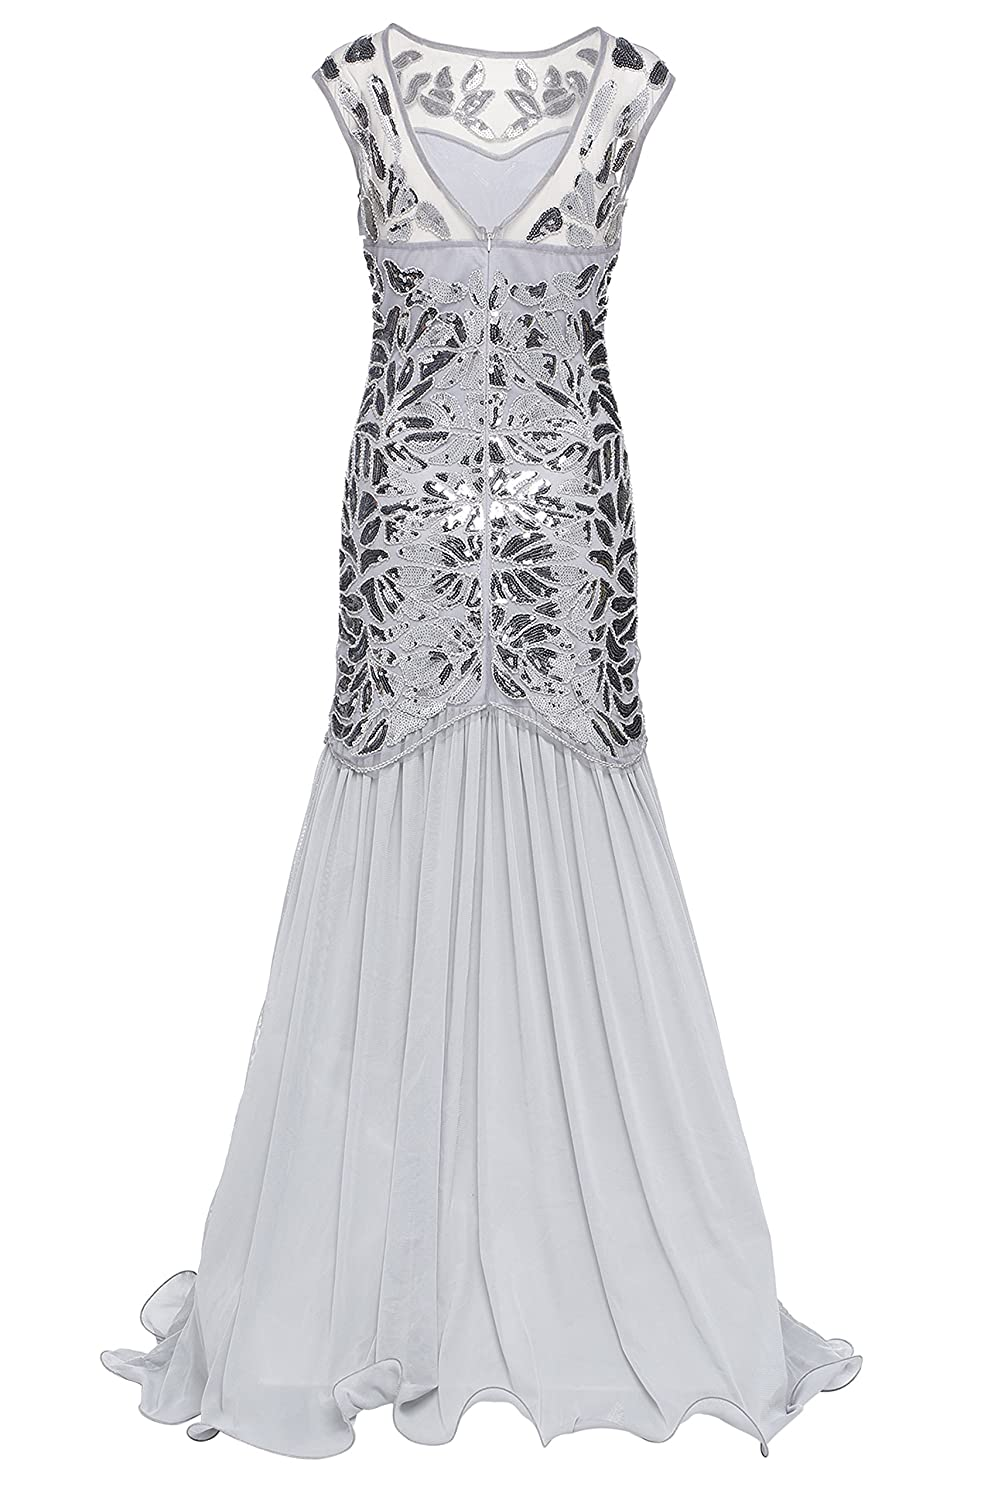 BABEYOND 1920s Art Deco Flapper Dress Long Embellished Sequin Beaded Party Dress for Women 20s Vintage Great Gatsby Dress: Amazon.co.uk: Clothing